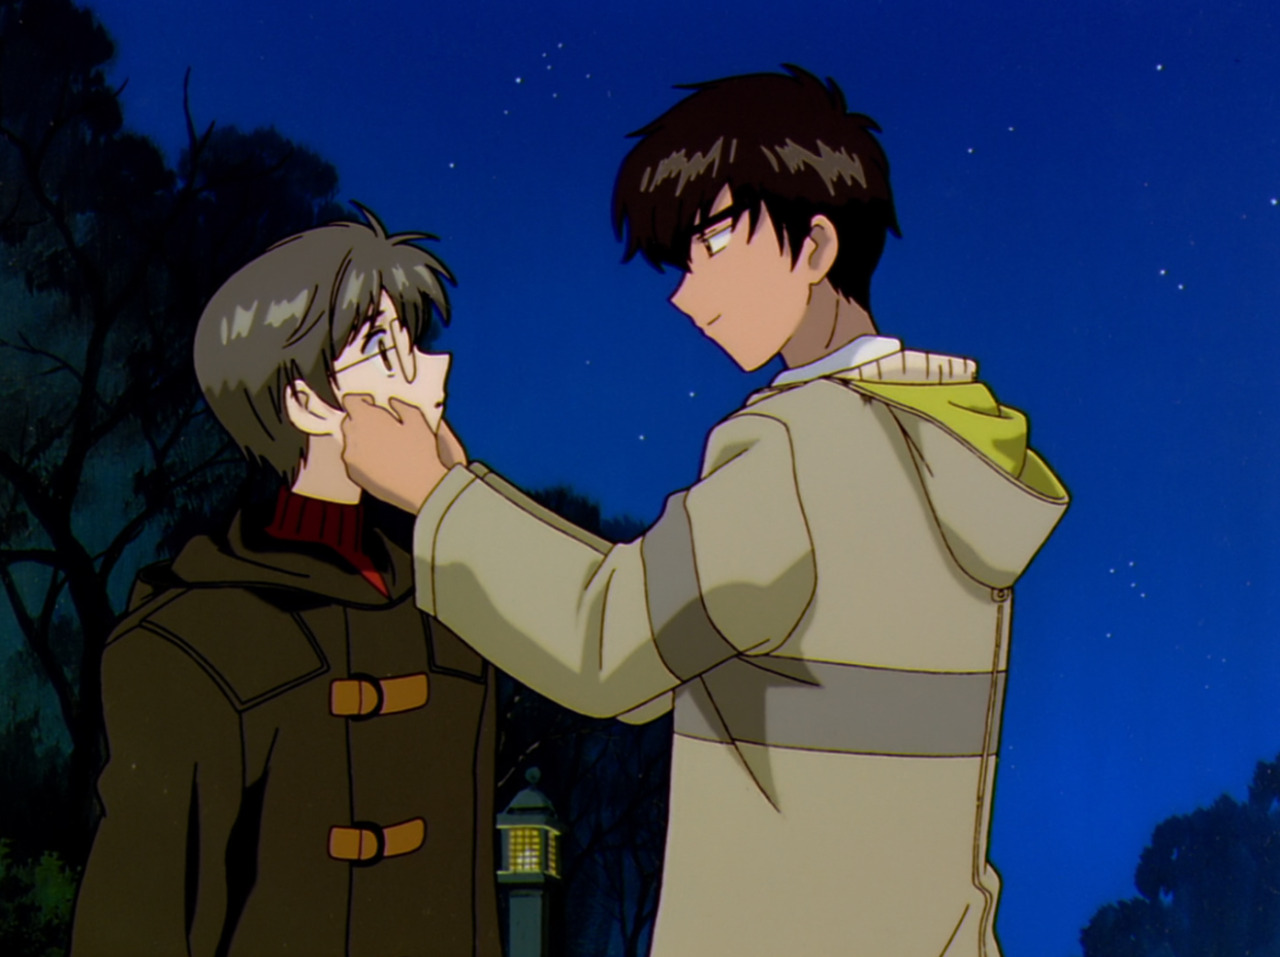 Touya and Yukito are standing outside at night. Touya is pinching Yukito's cheeks affectionately.